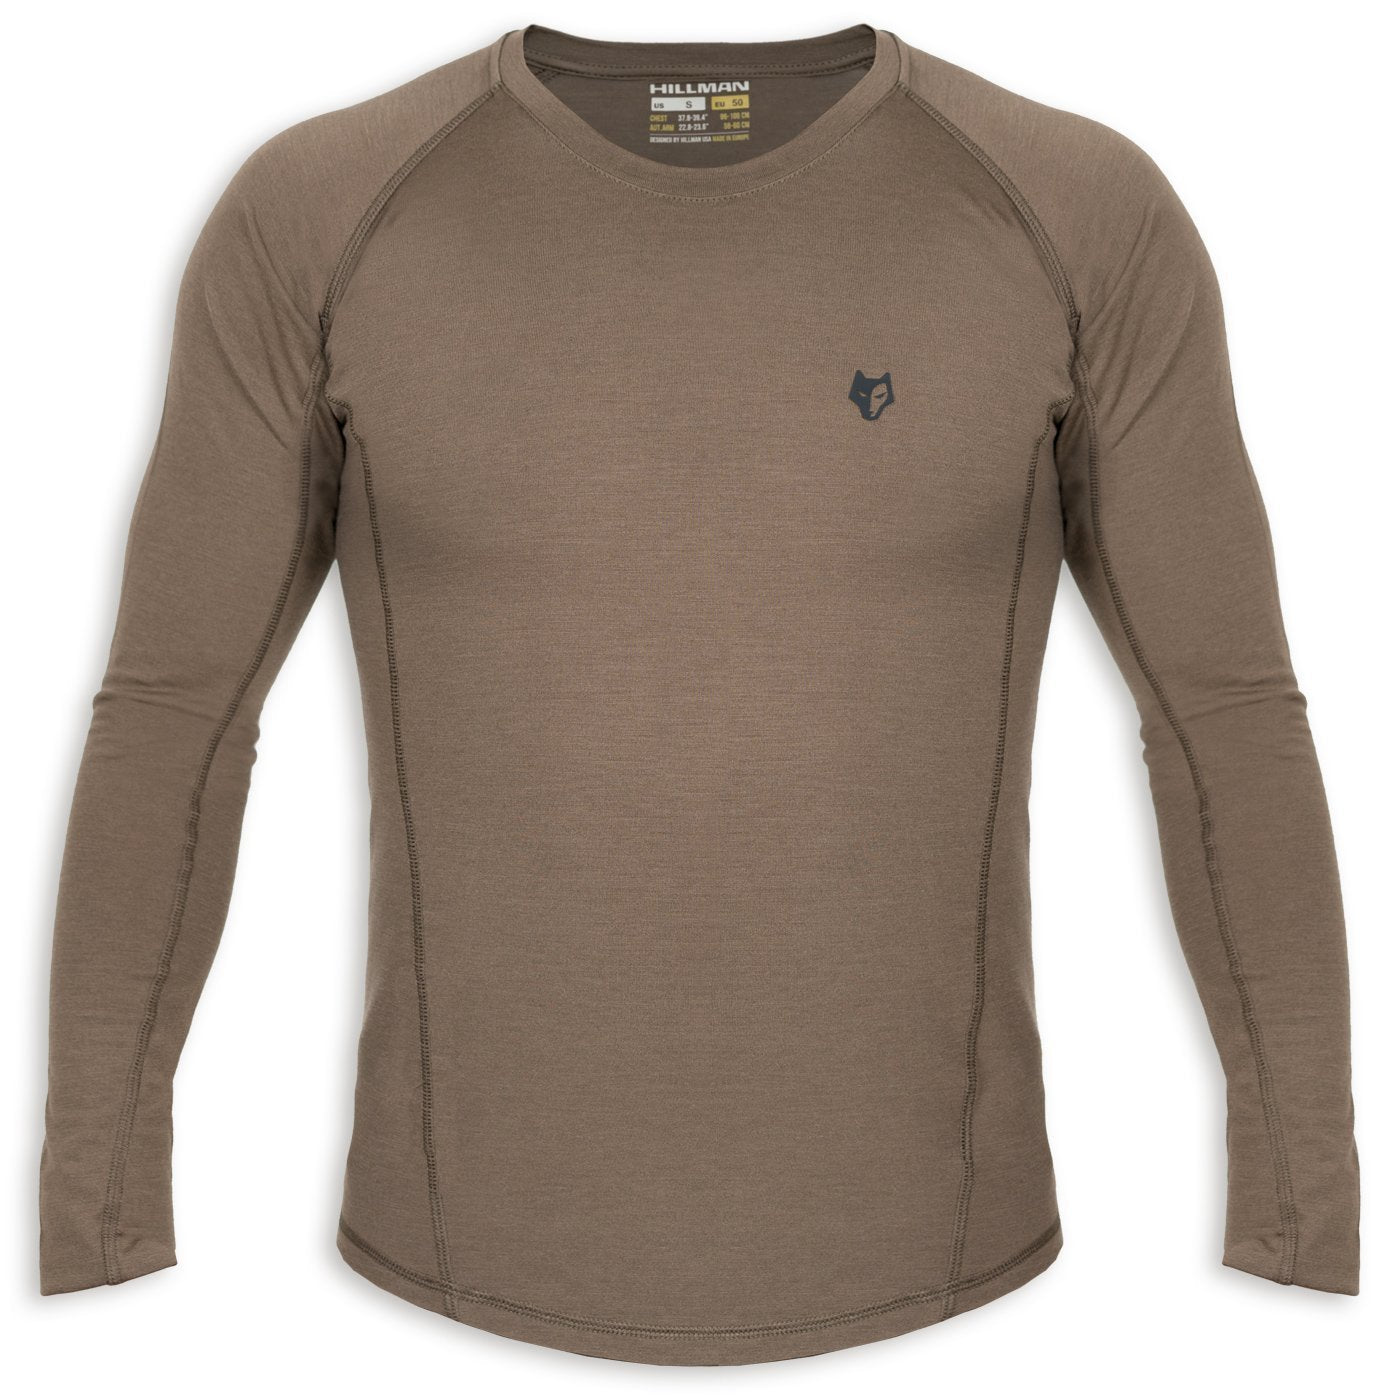 [16μm-160g] MERINO HUNTING T-SHIRT LONG SLEEVE [ 1 ]